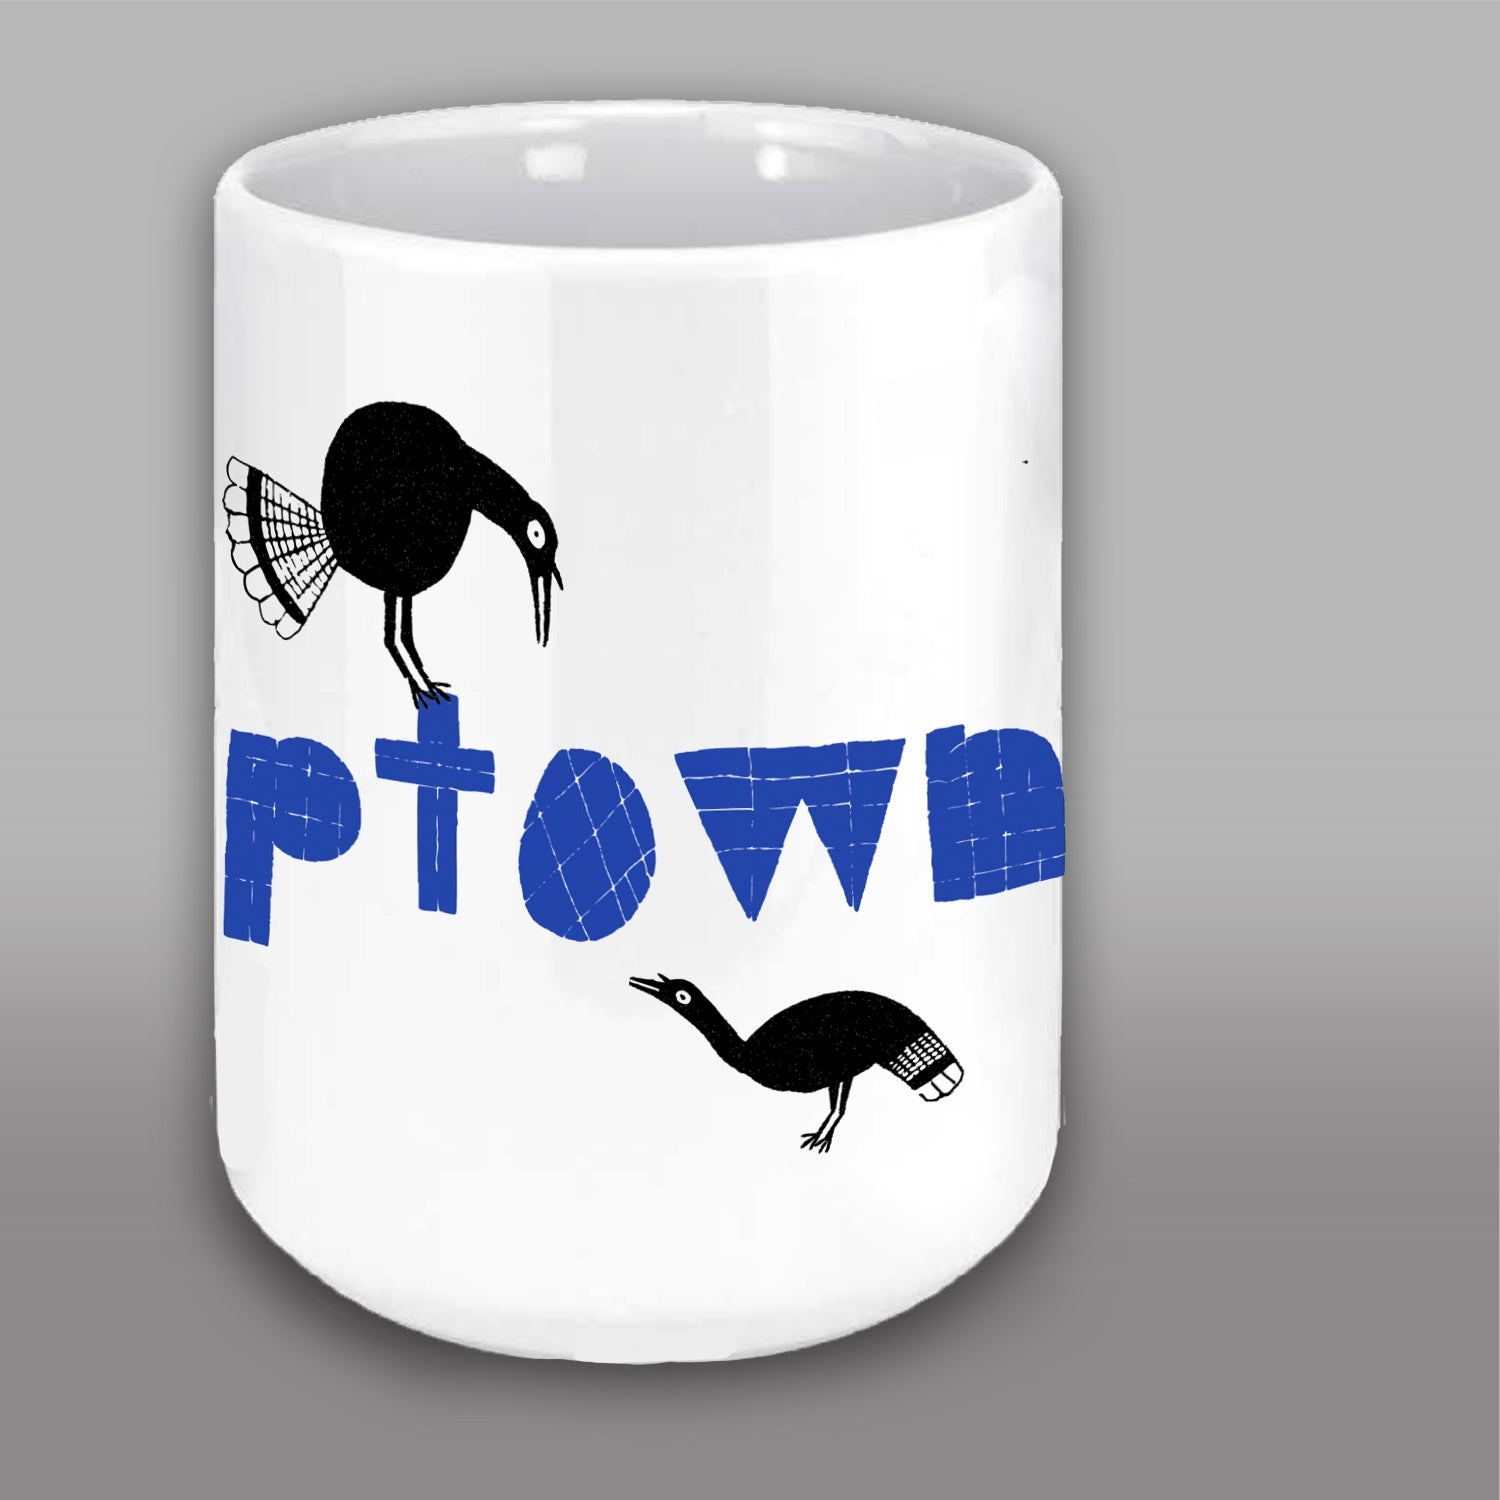 Ptown Turkeys Mug